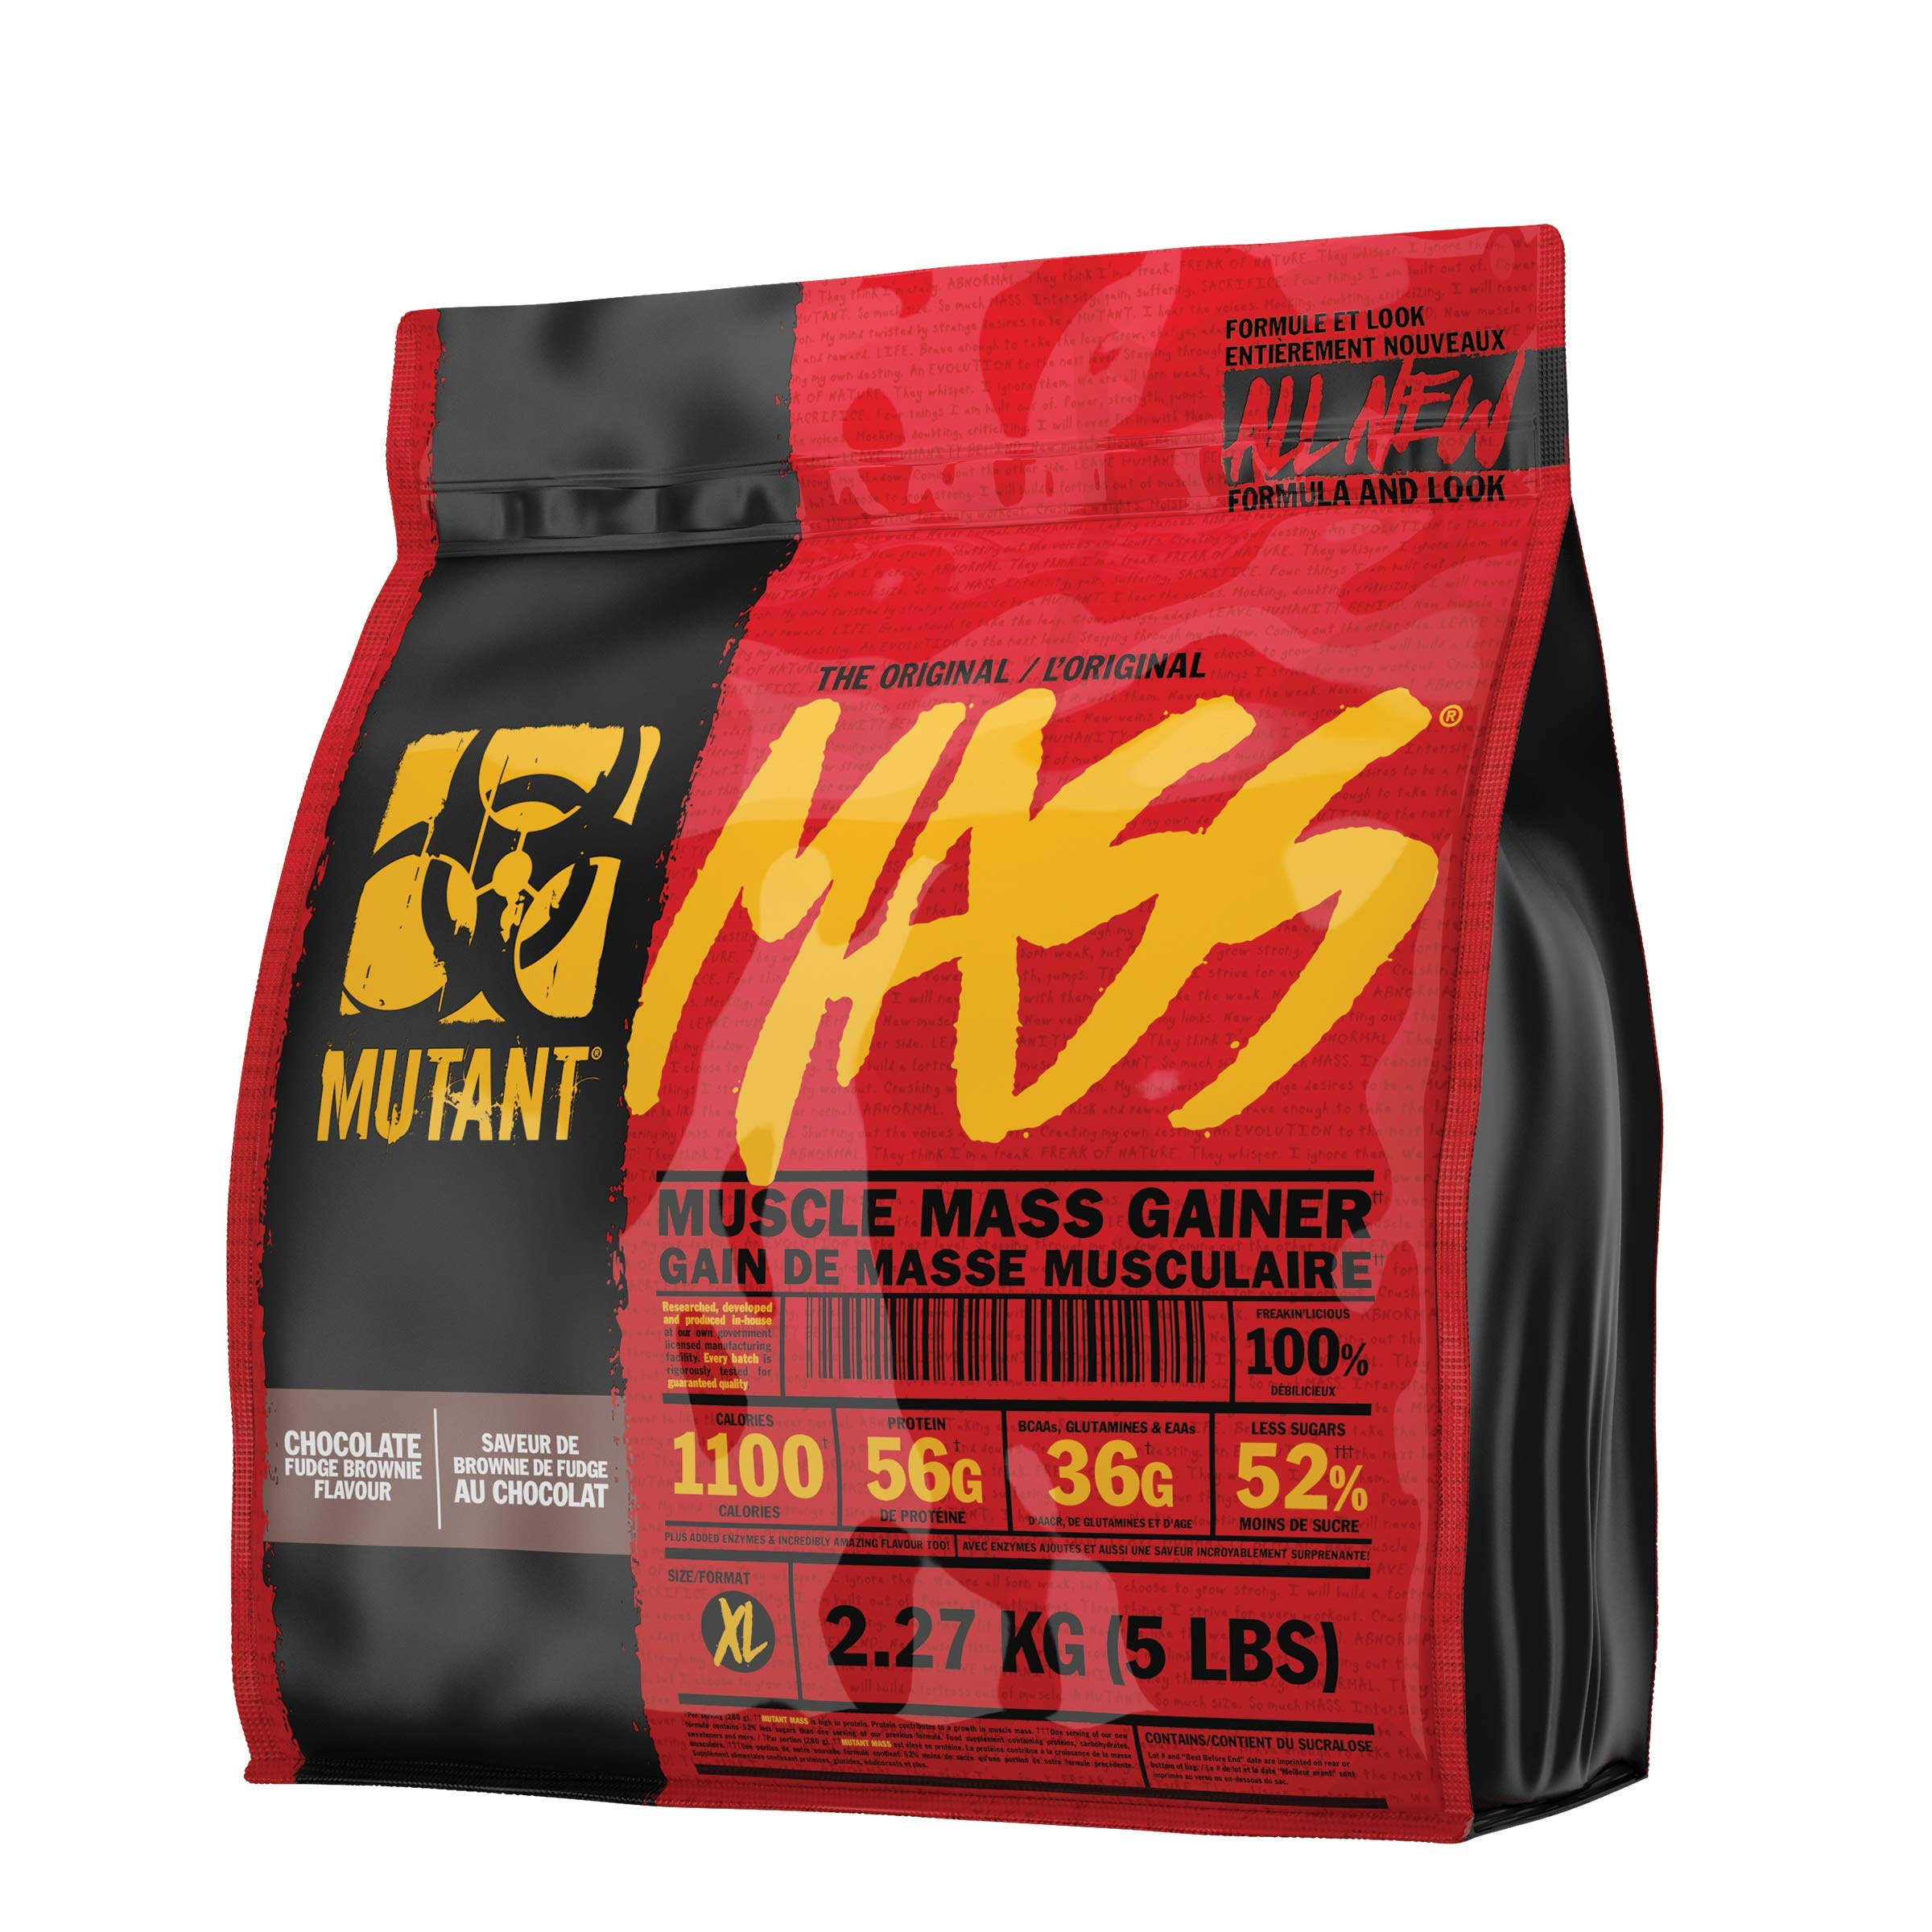 MUTANT Mass Weight Gainer Protein Powder with Whey, and Casein Protein Blend for High-Calorie Workout Shakes, Smoothies, and Drinks, 5 lb - Chocolate Fudge Brownie by Mutant (Image #1)